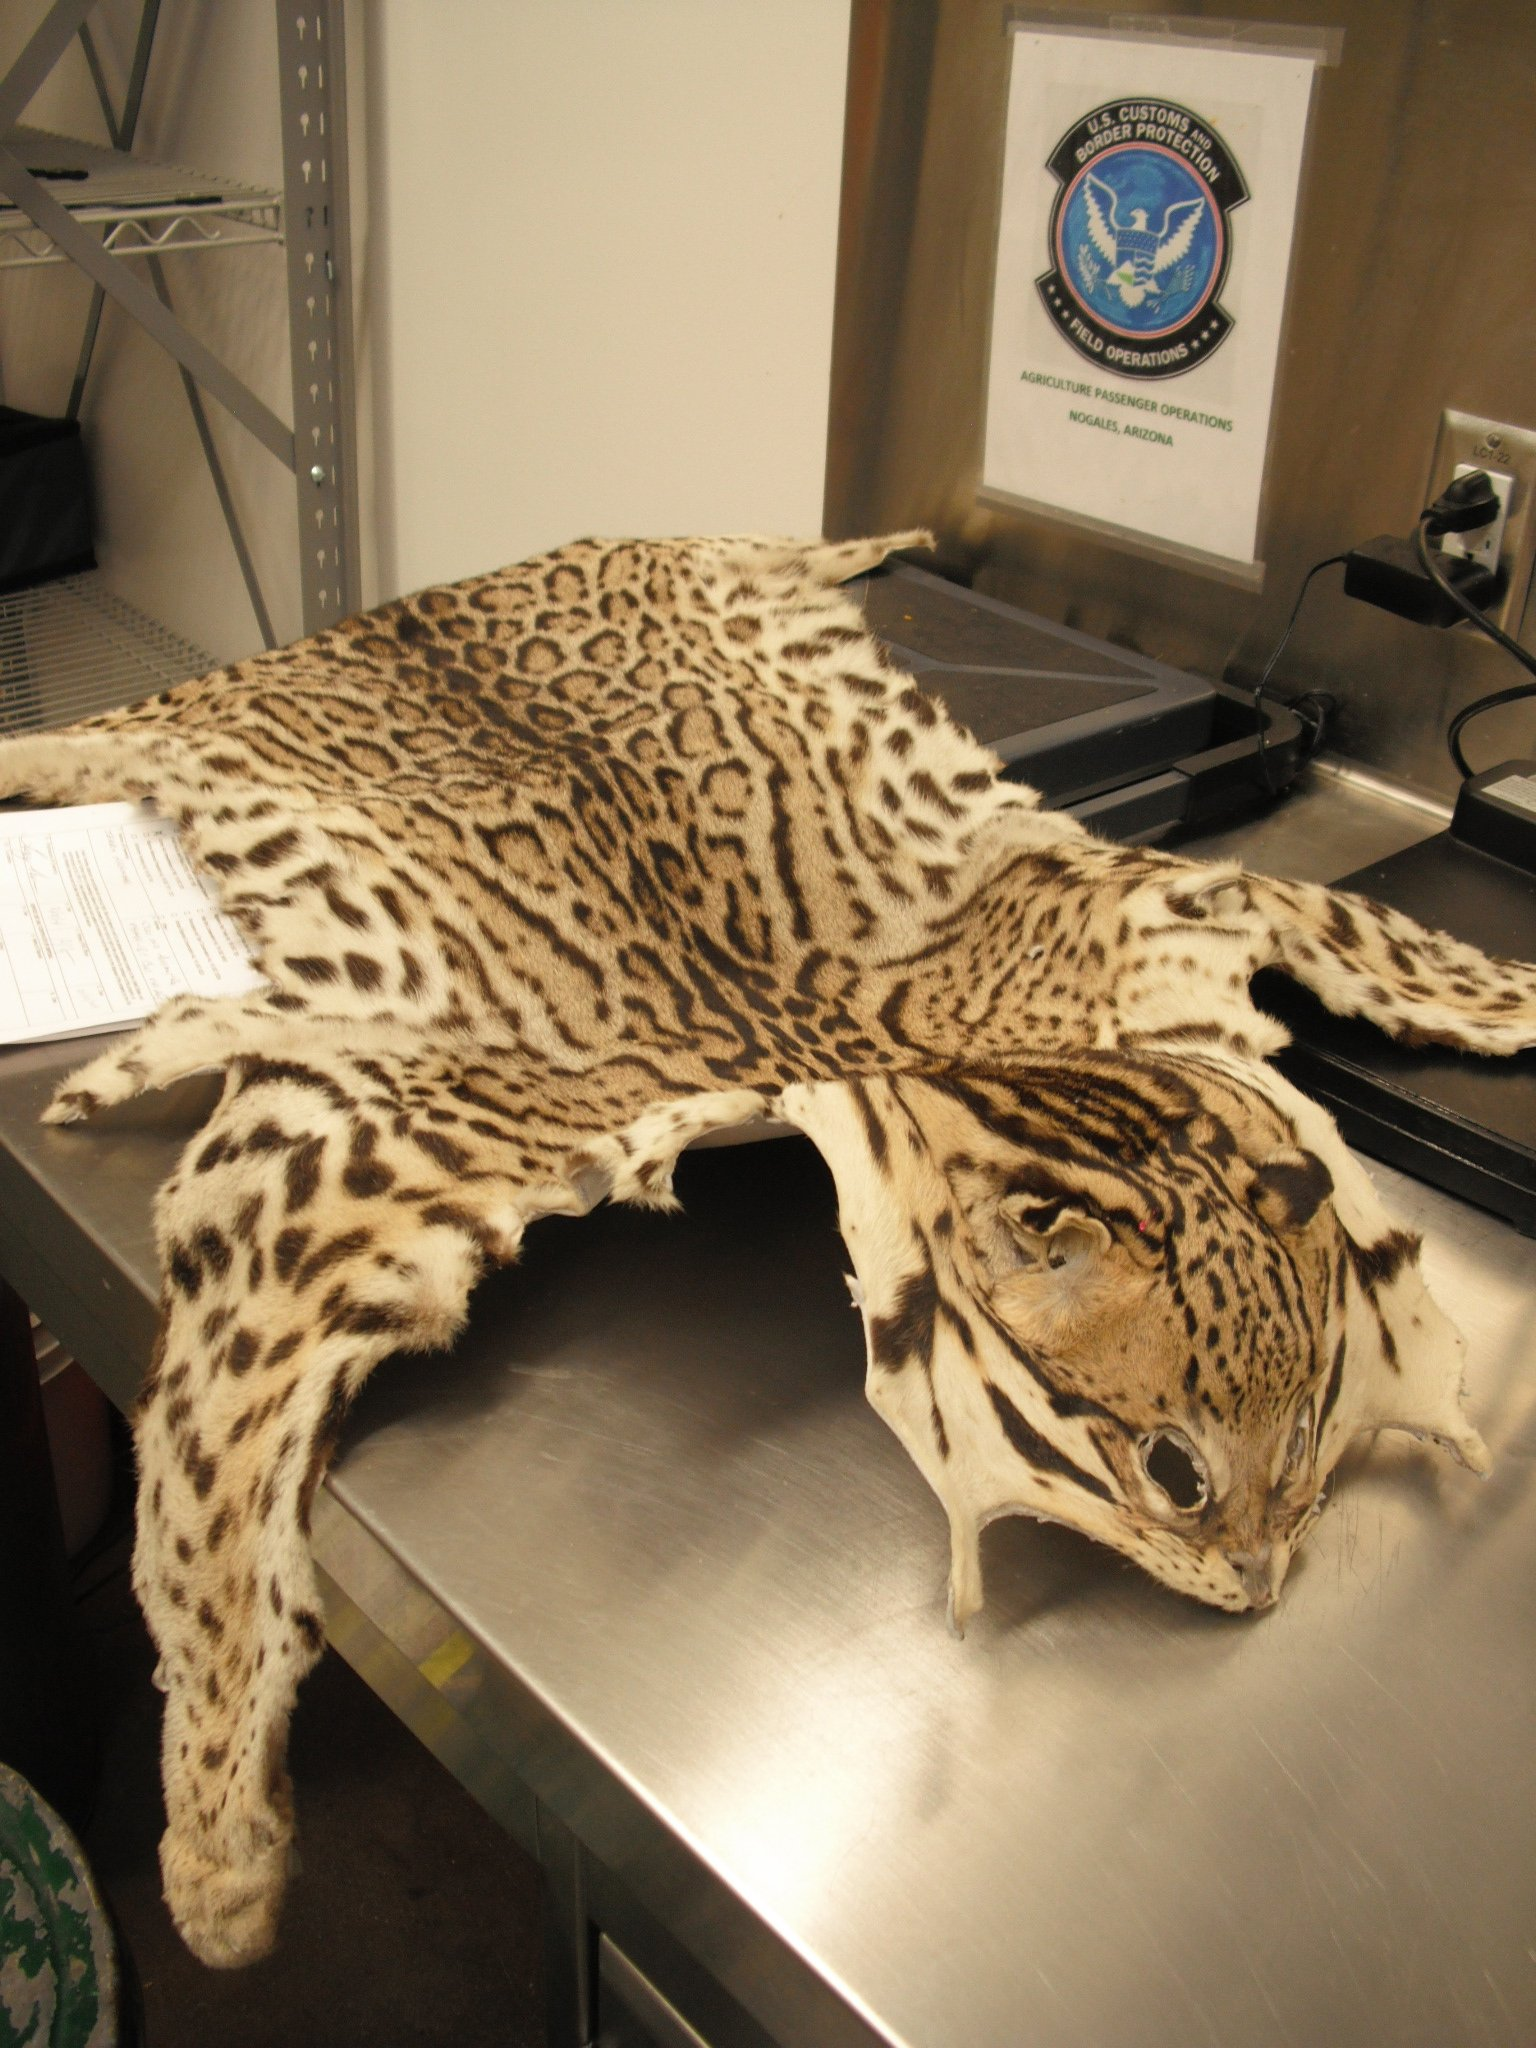 Ocelot pelt seized (Source: U.S. Customs and Border Protection)